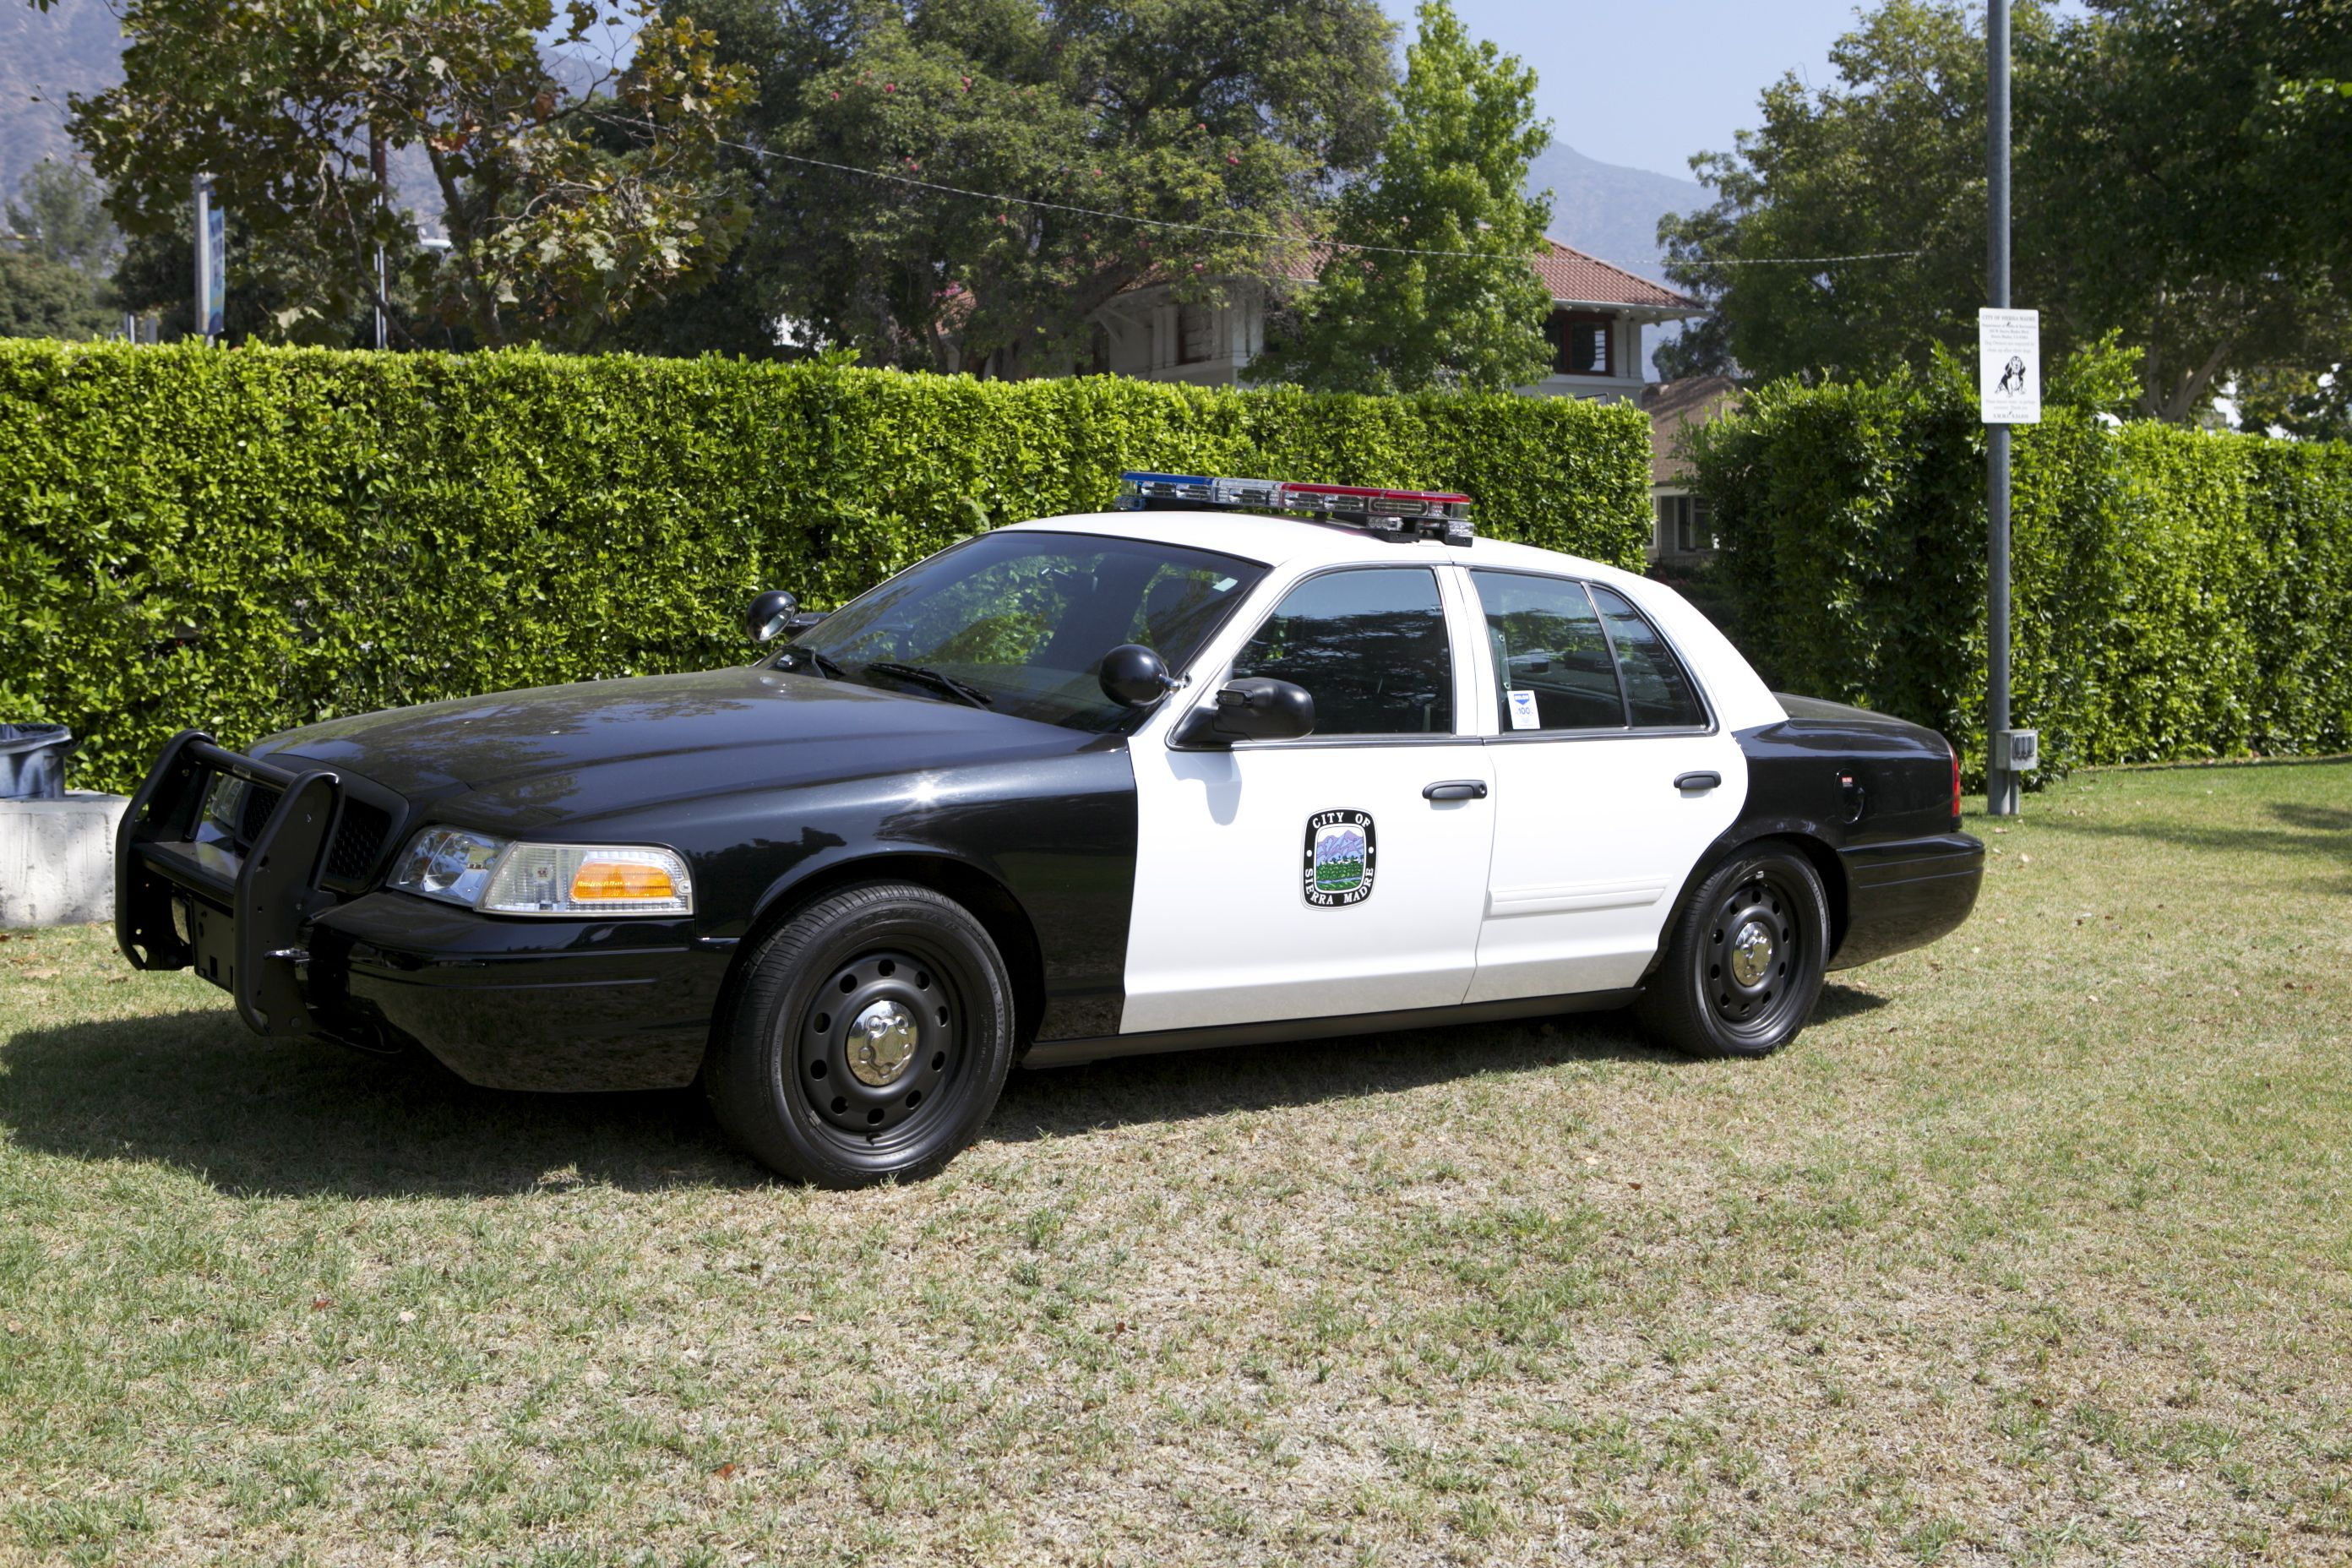 SCAQMD Unveils Natural Gas Police Pursuit Vehicle